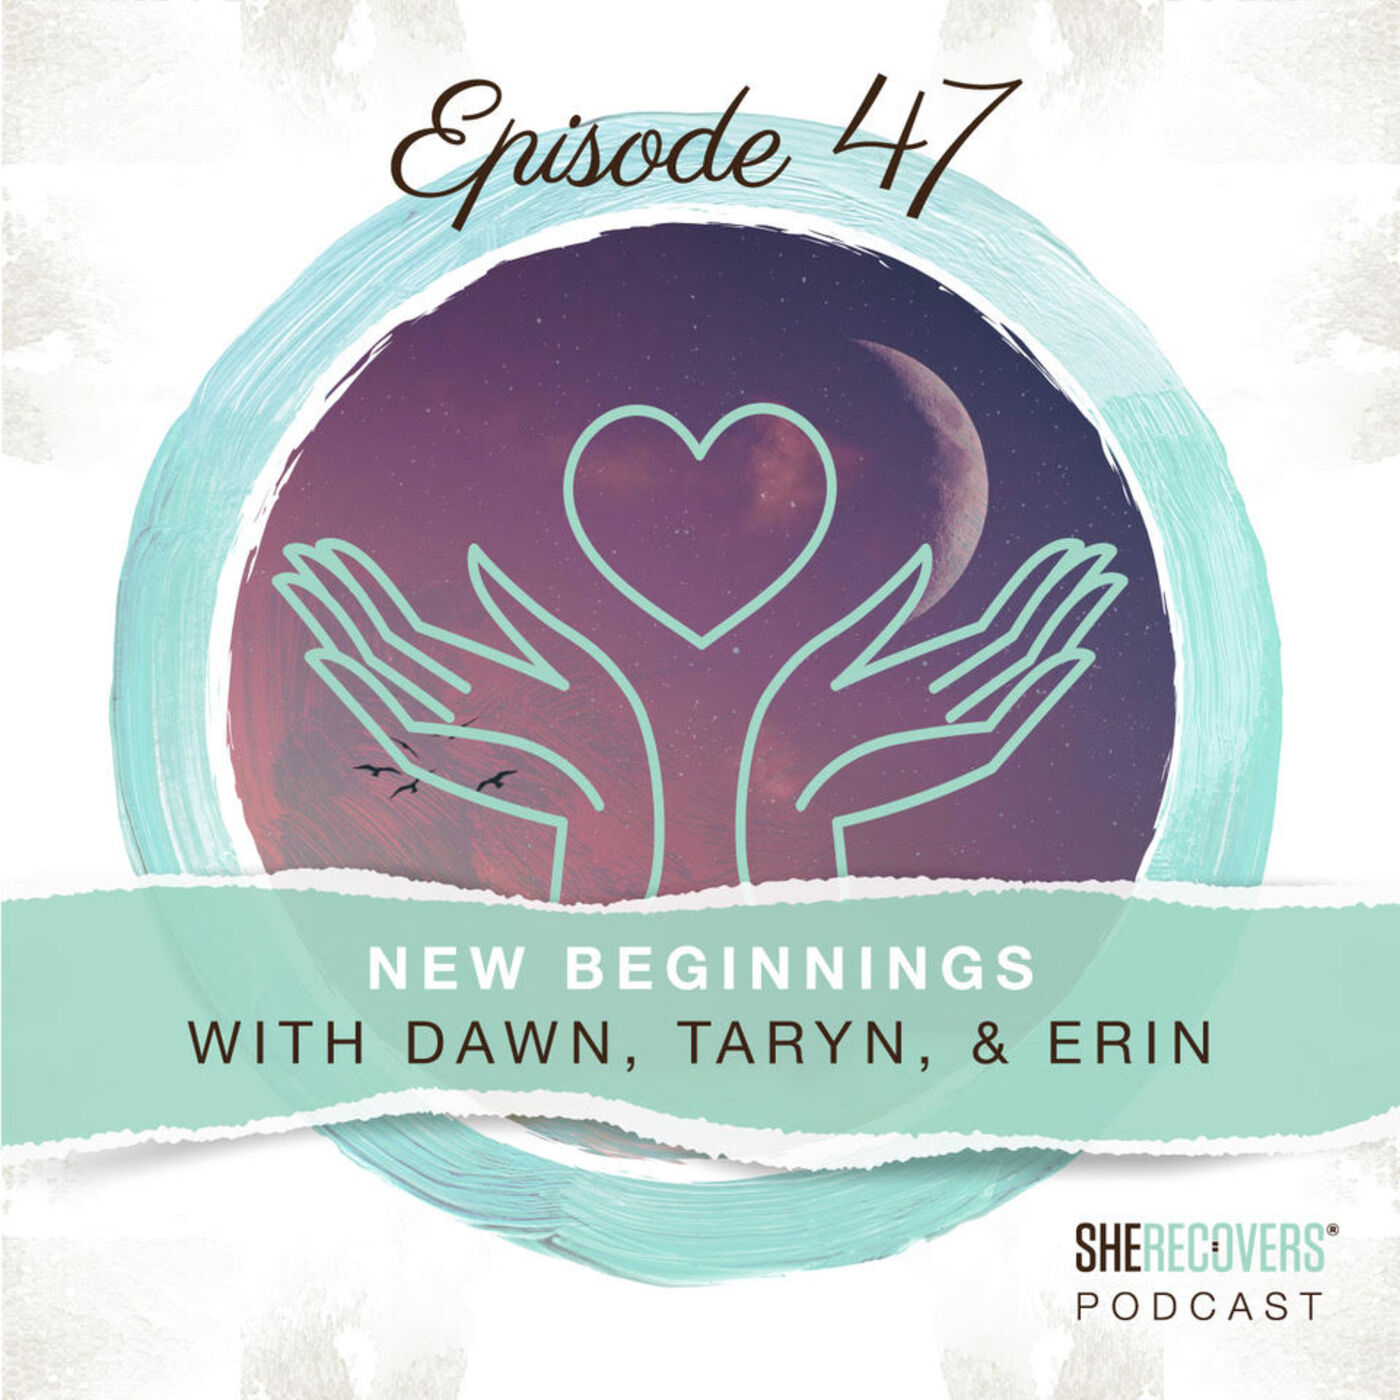 Episode 47: New Beginnings with Dawn, Taryn and Erin